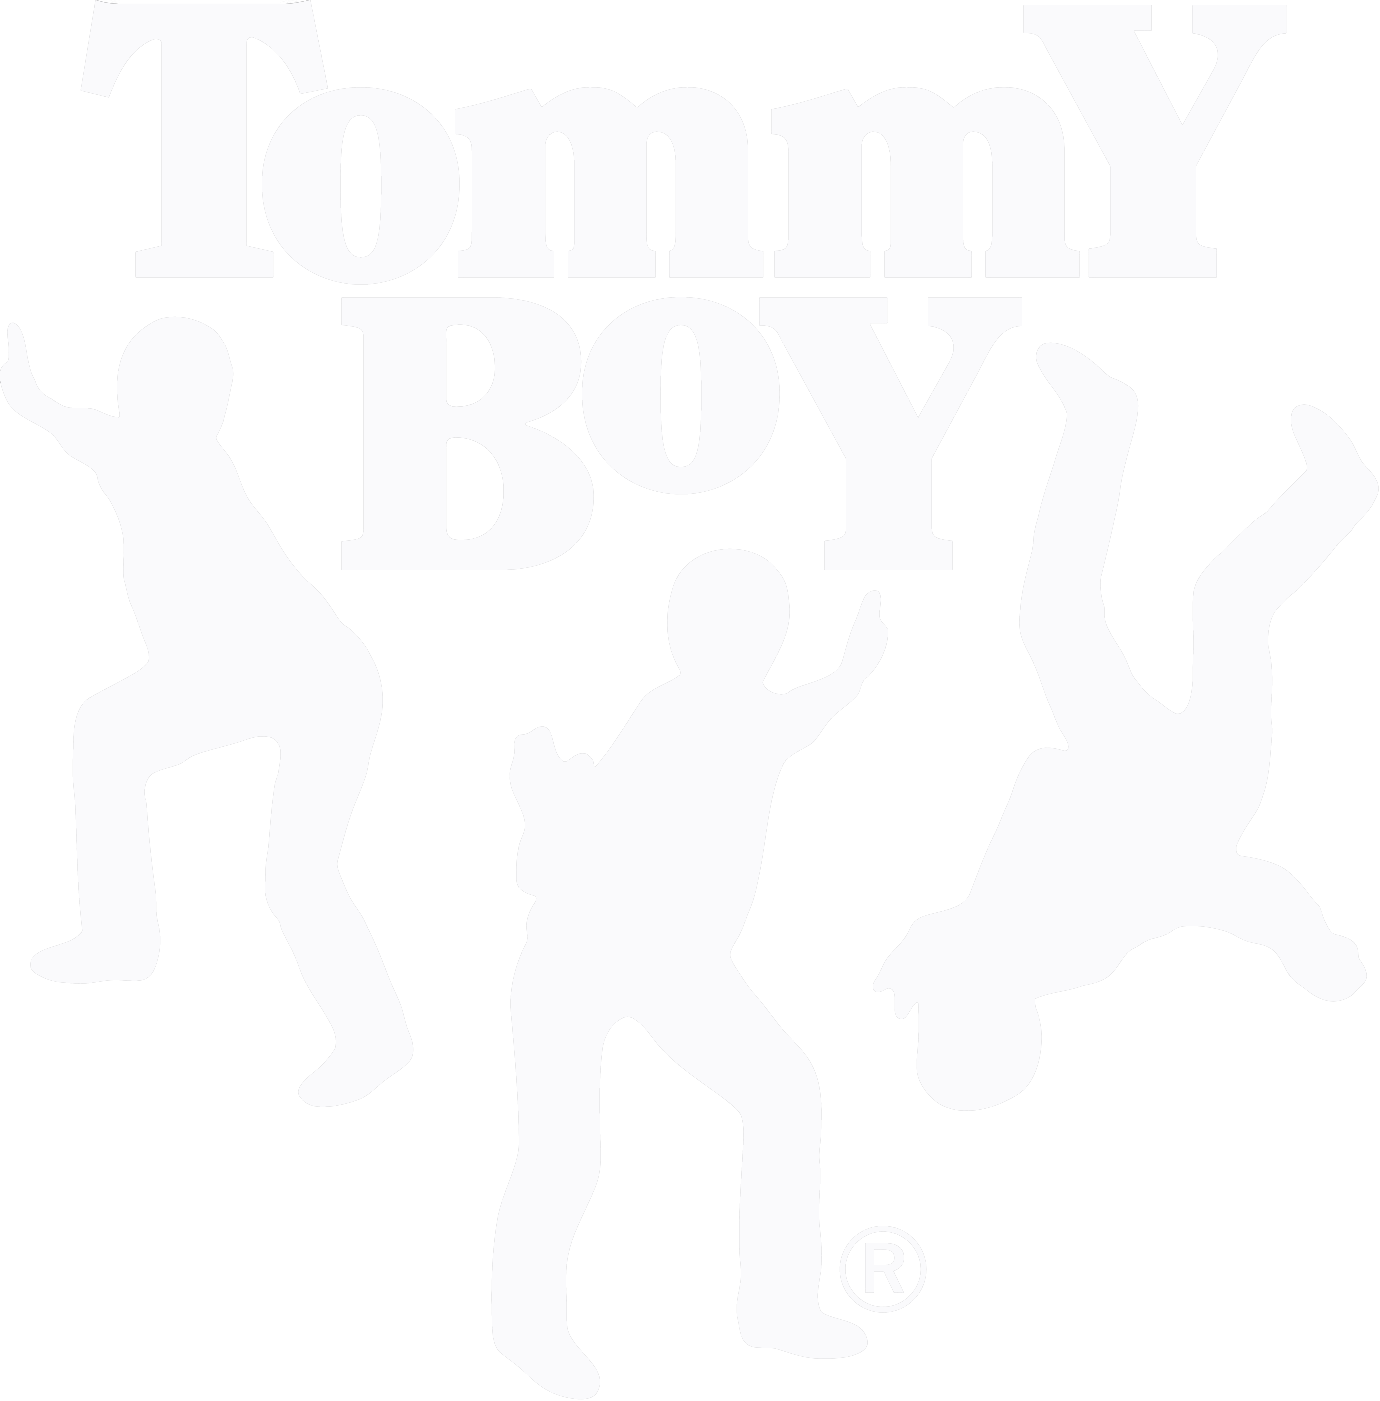 Tommy boy png. Soundsgood blog in the